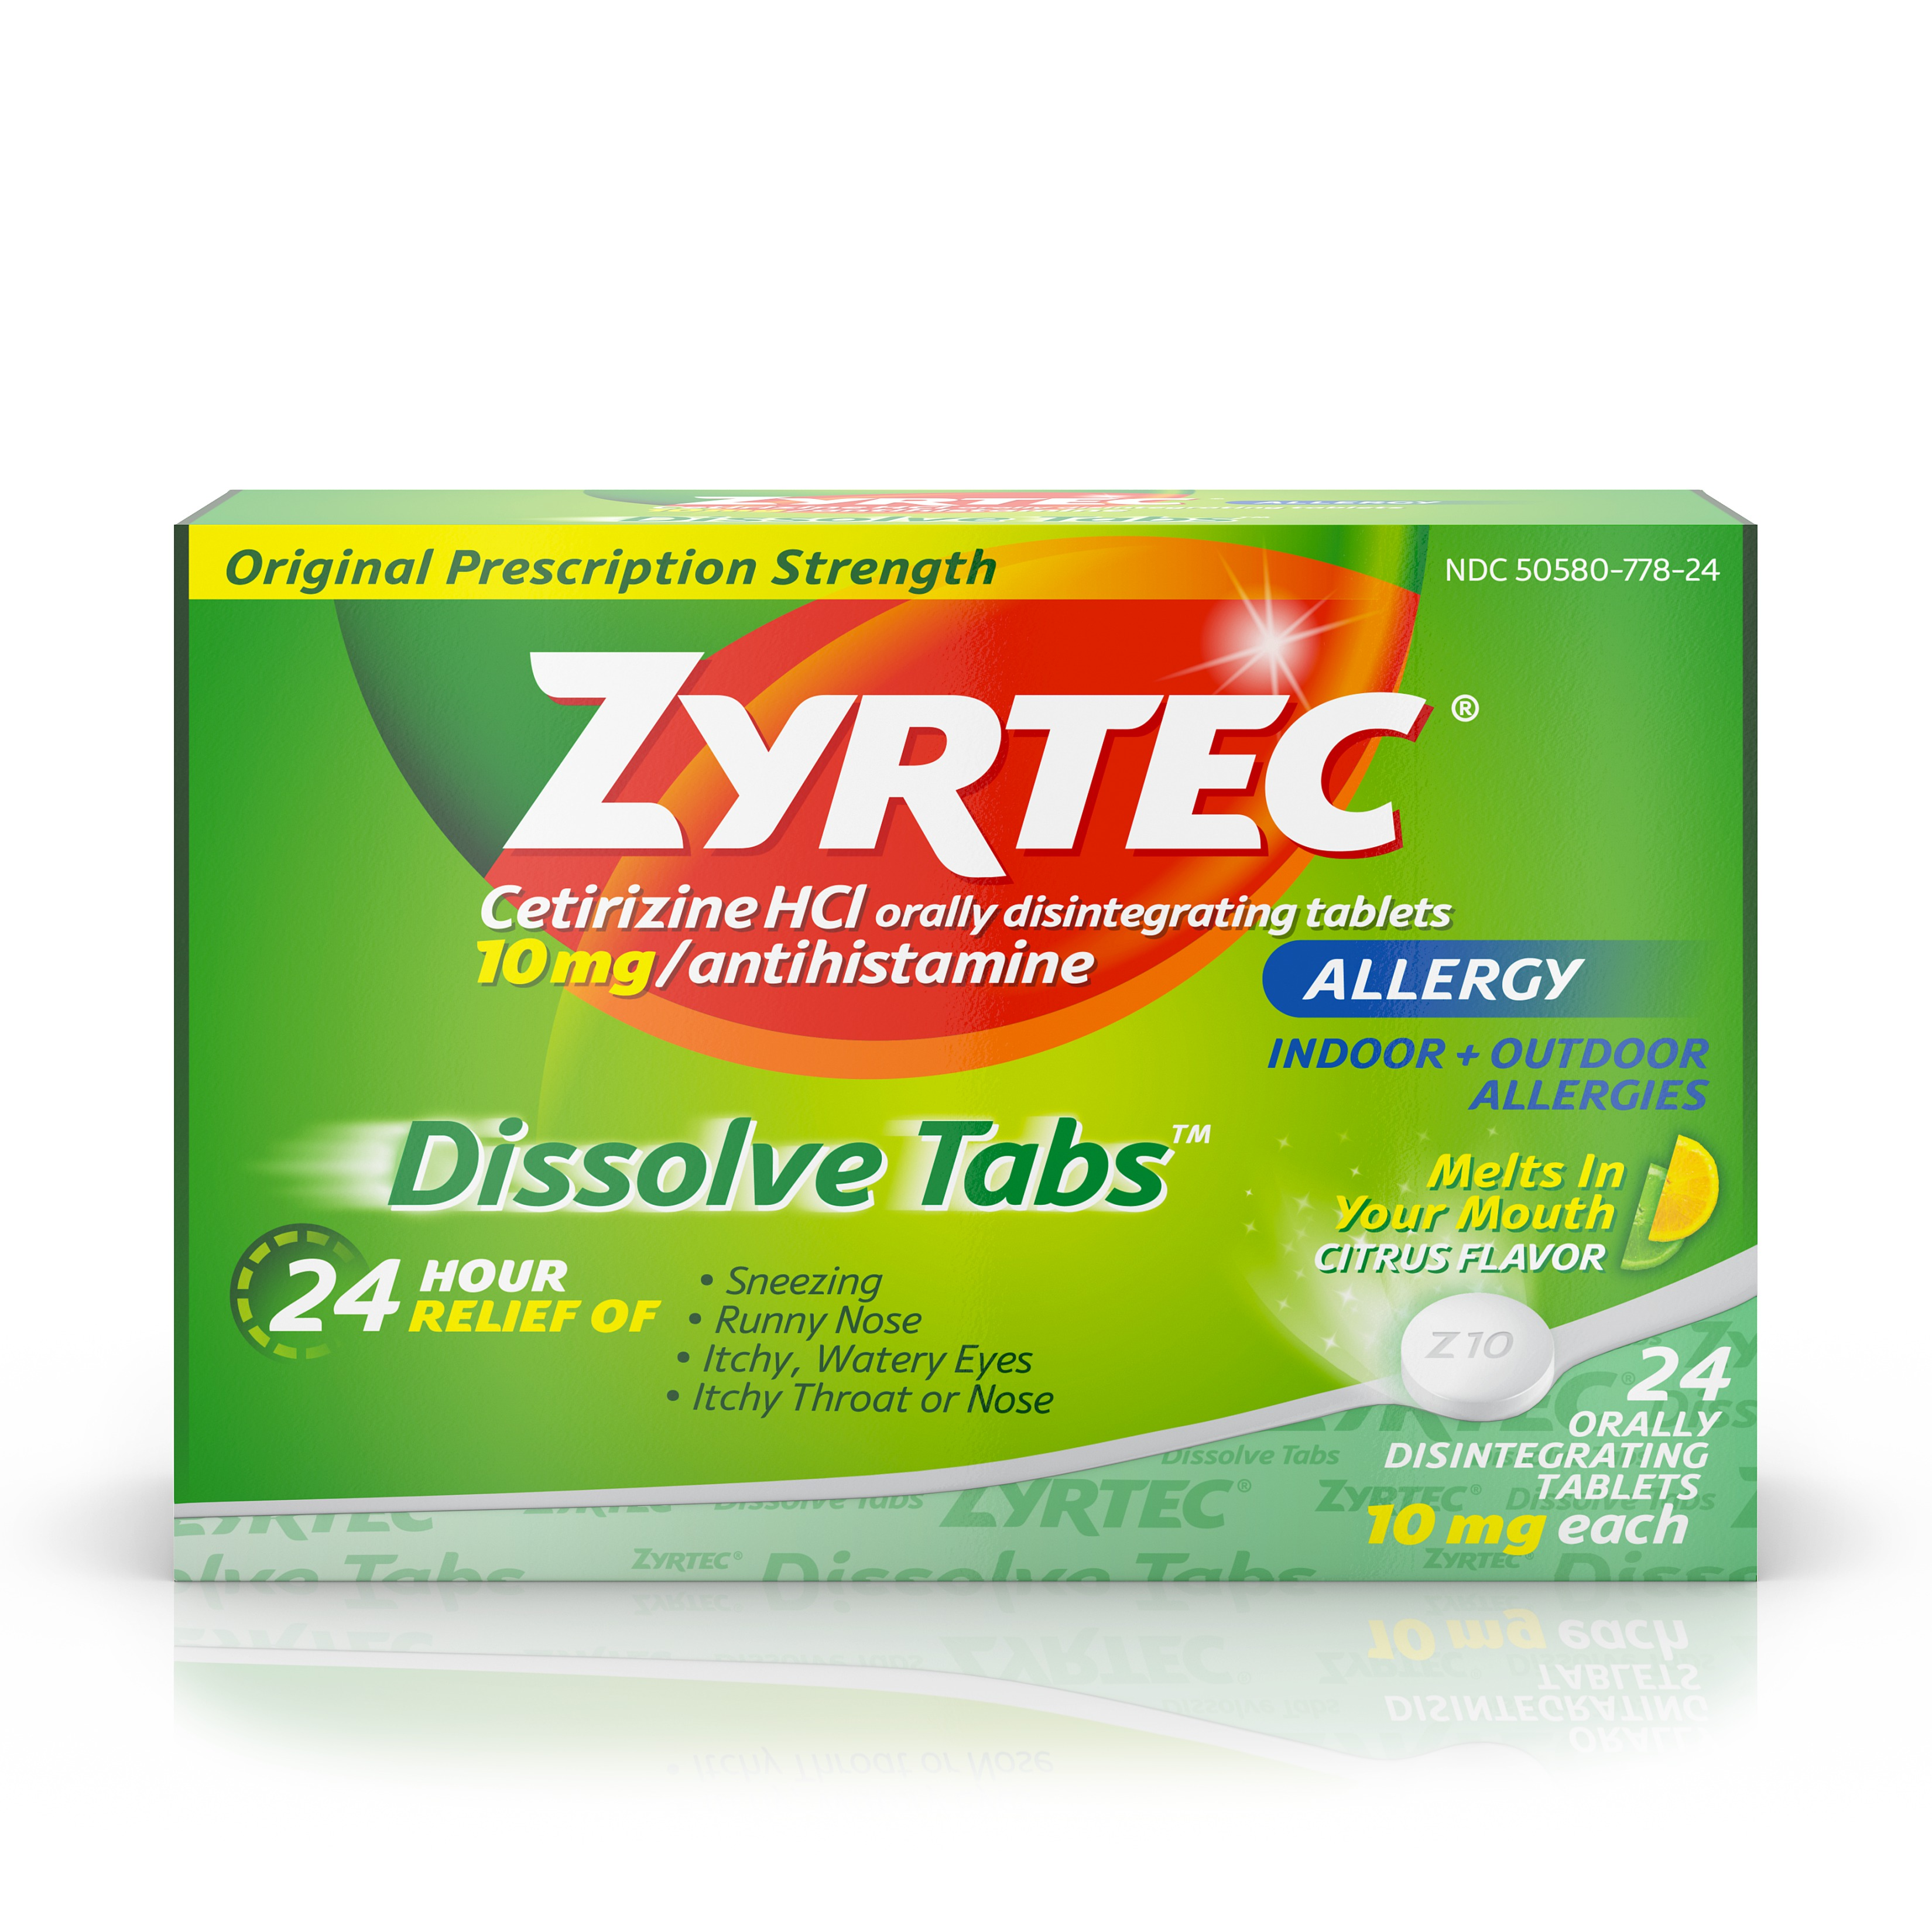 Zyrtec Allergy Relief Dissolve Tablets With Cetirizine, Citrus Flavored, 24 Count